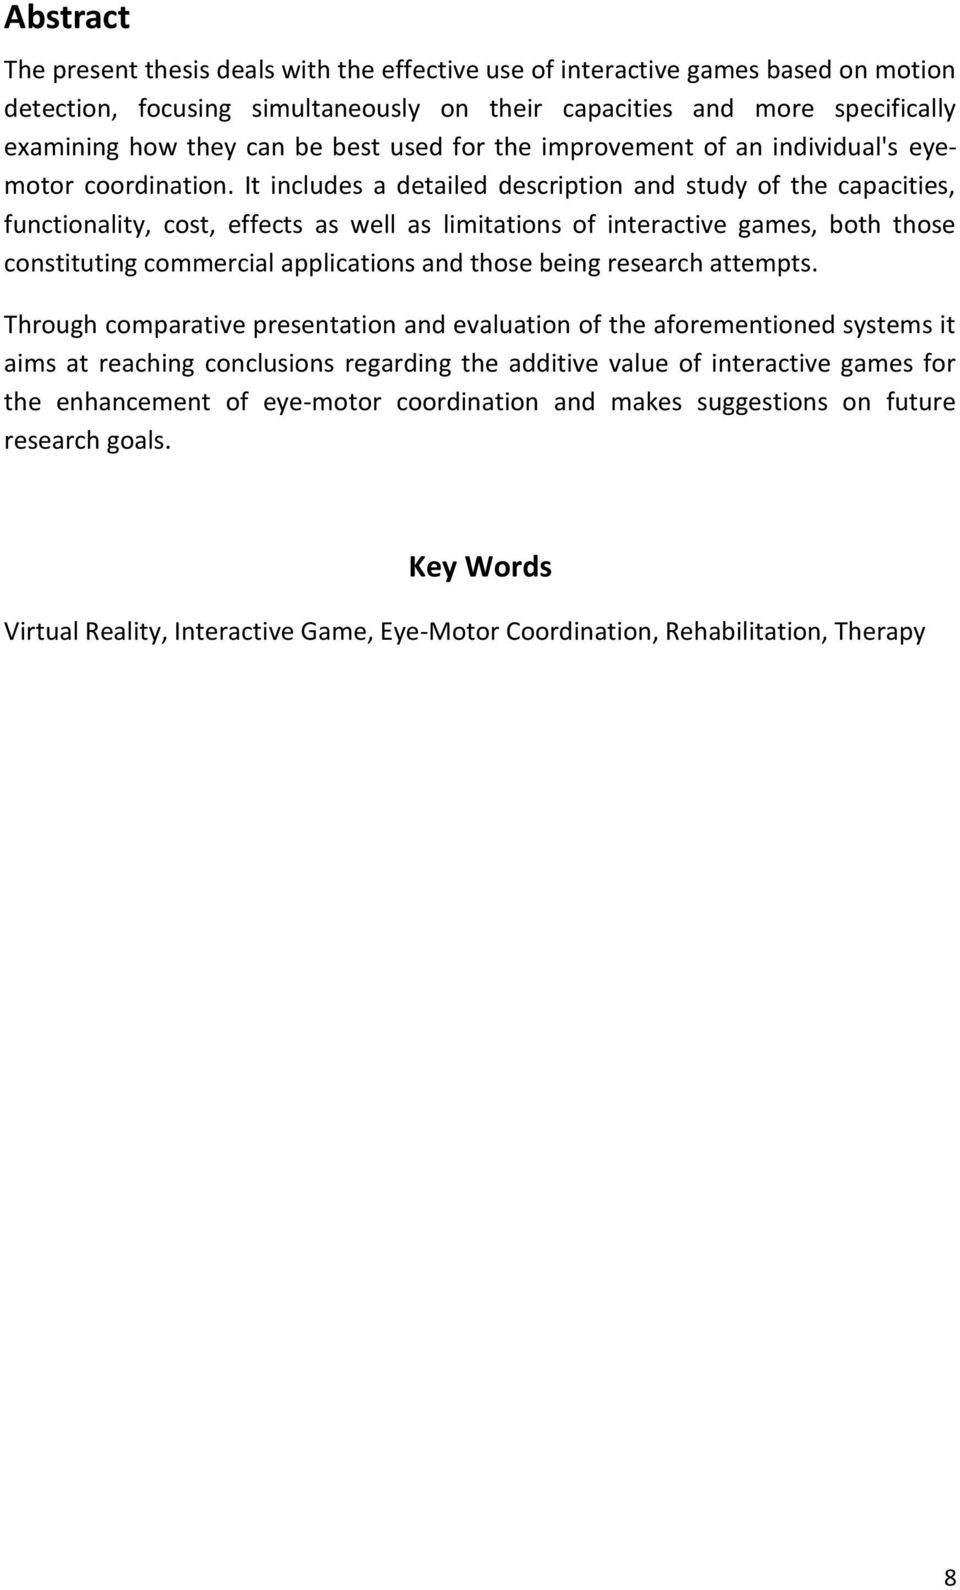 It includes a detailed description and study of the capacities, functionality, cost, effects as well as limitations of interactive games, both those constituting commercial applications and those